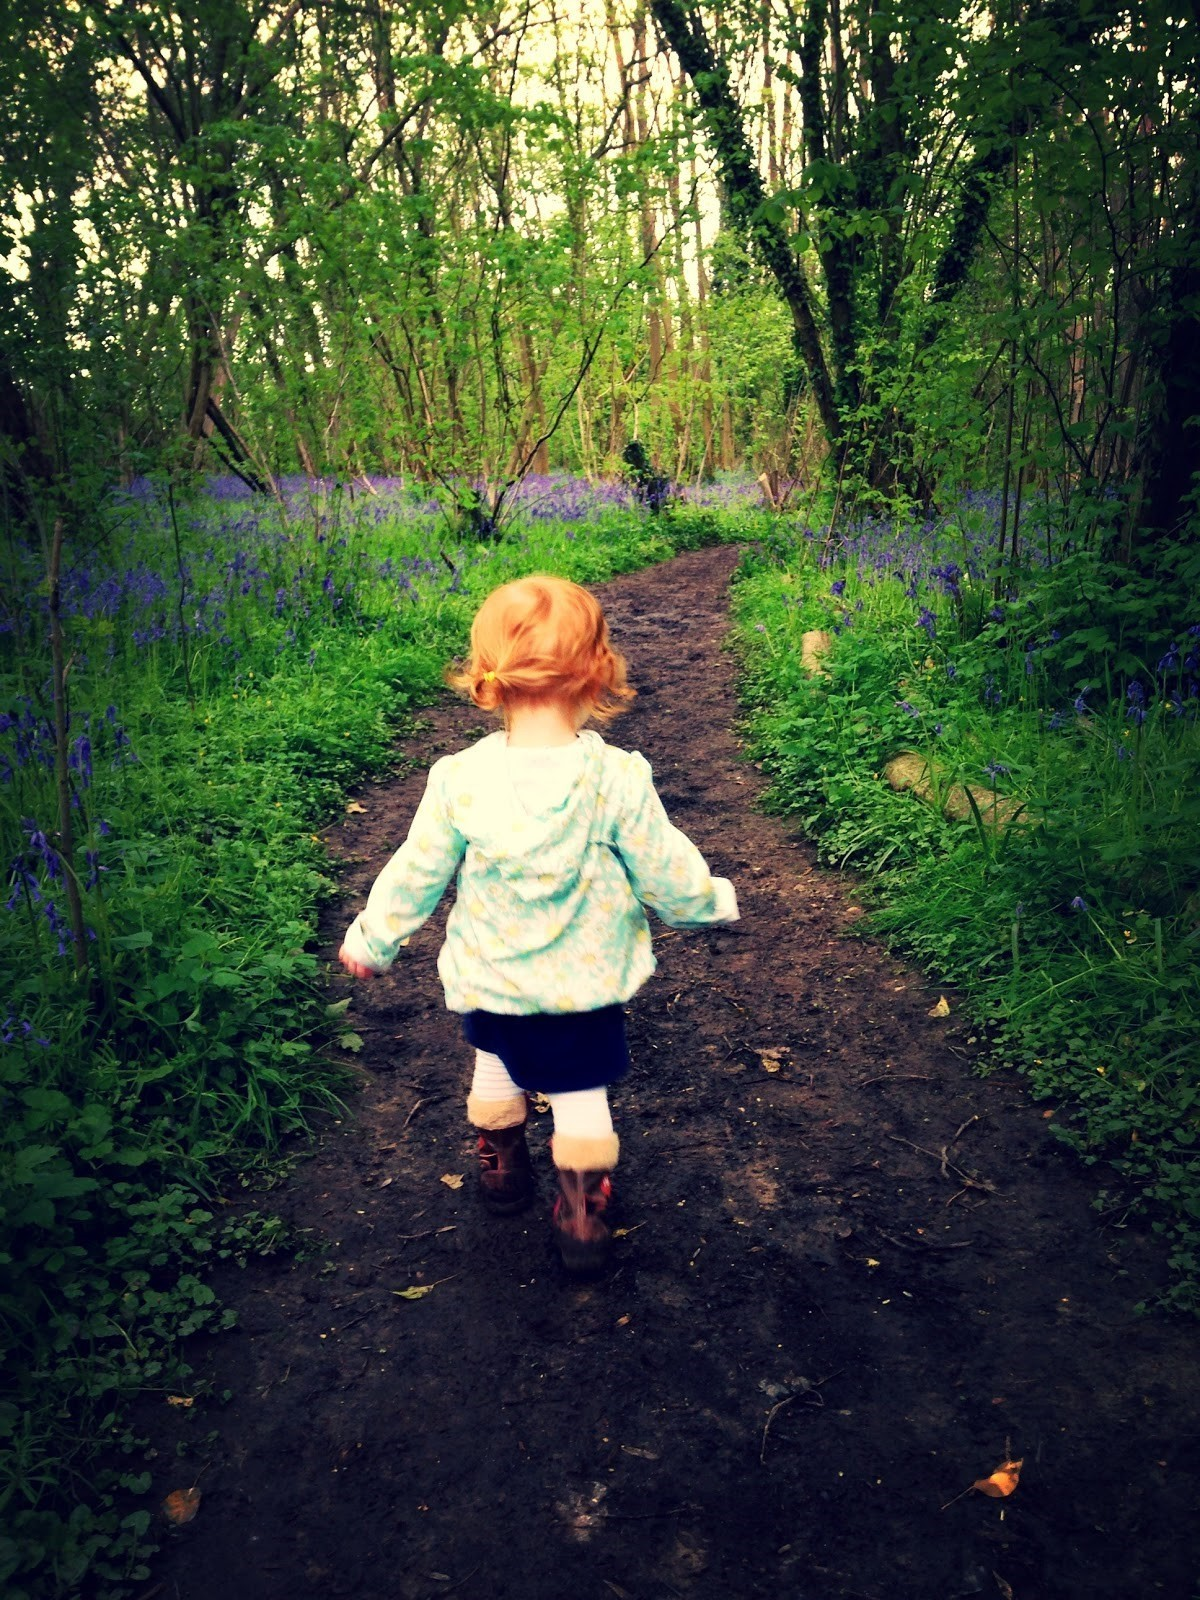 50% of British children are unable to identify a bluebell